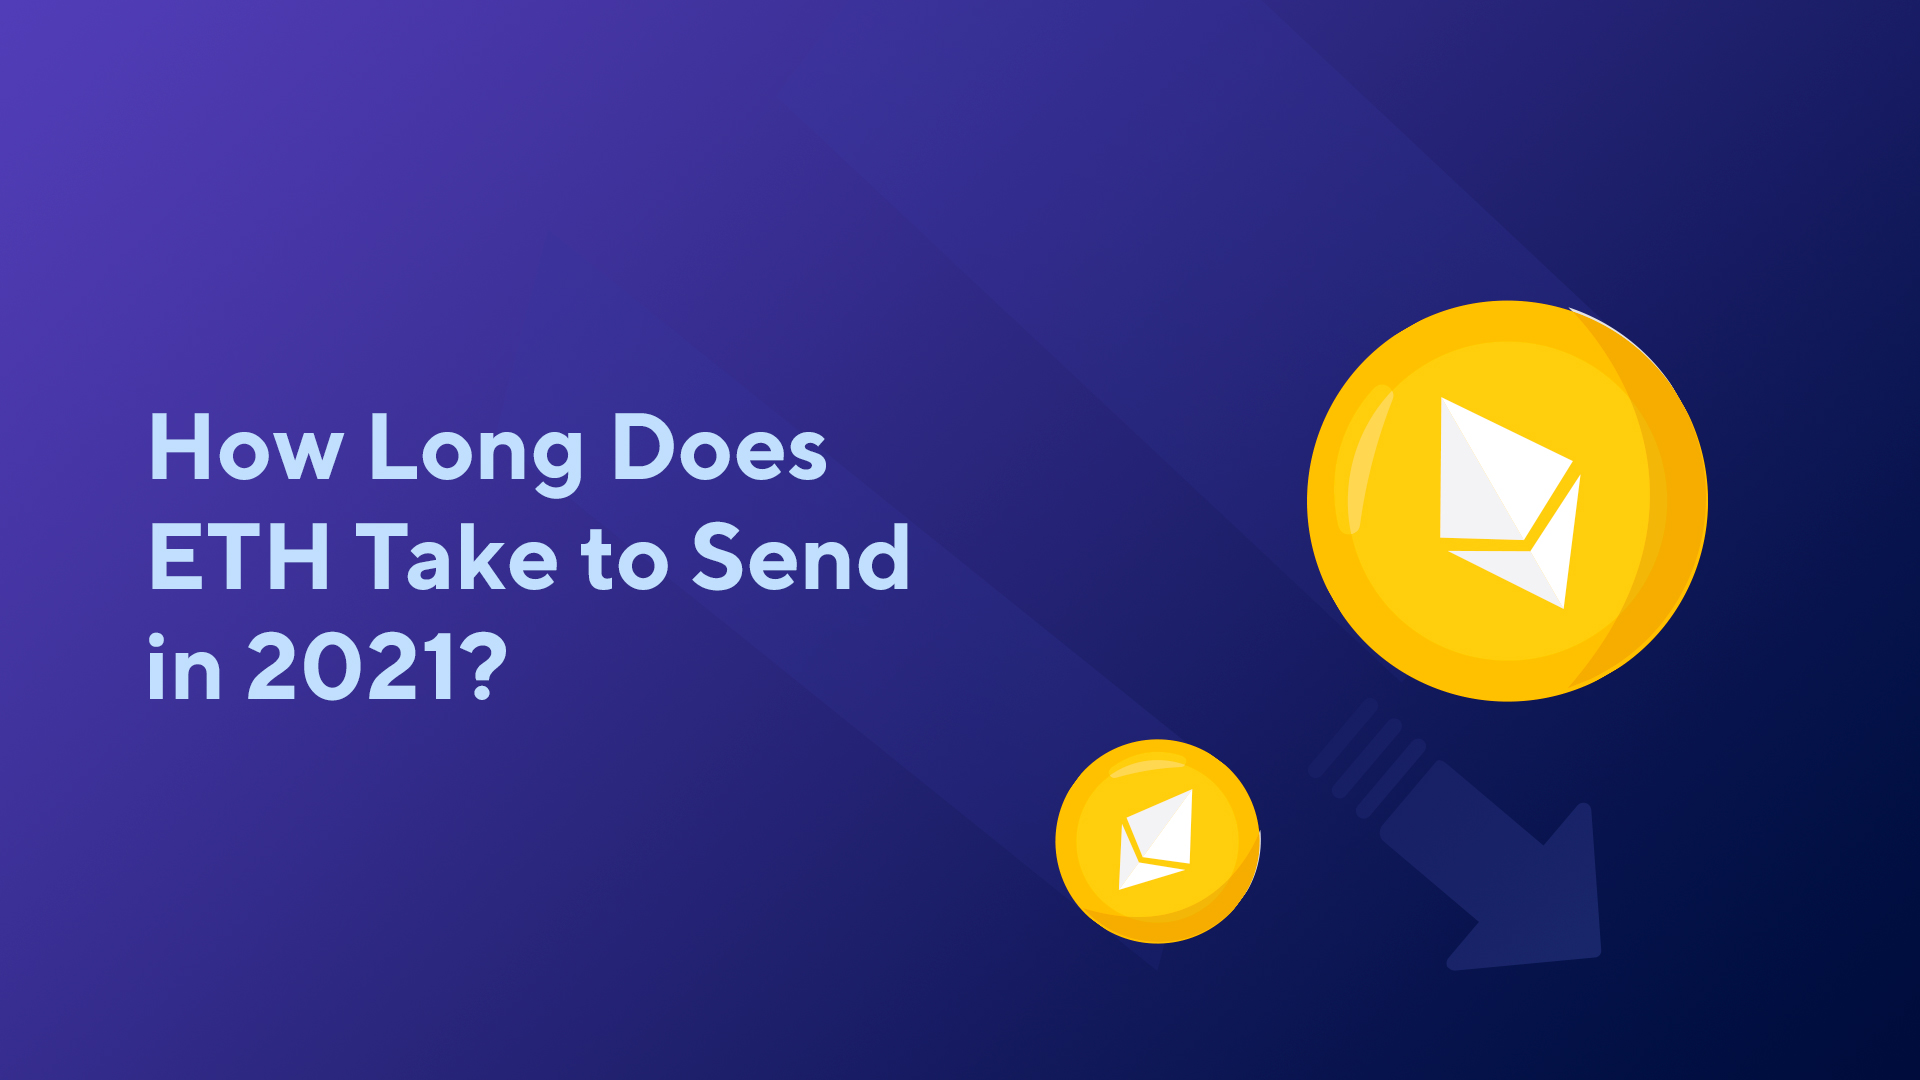 How Long Does ETH Take to Send in 2021?